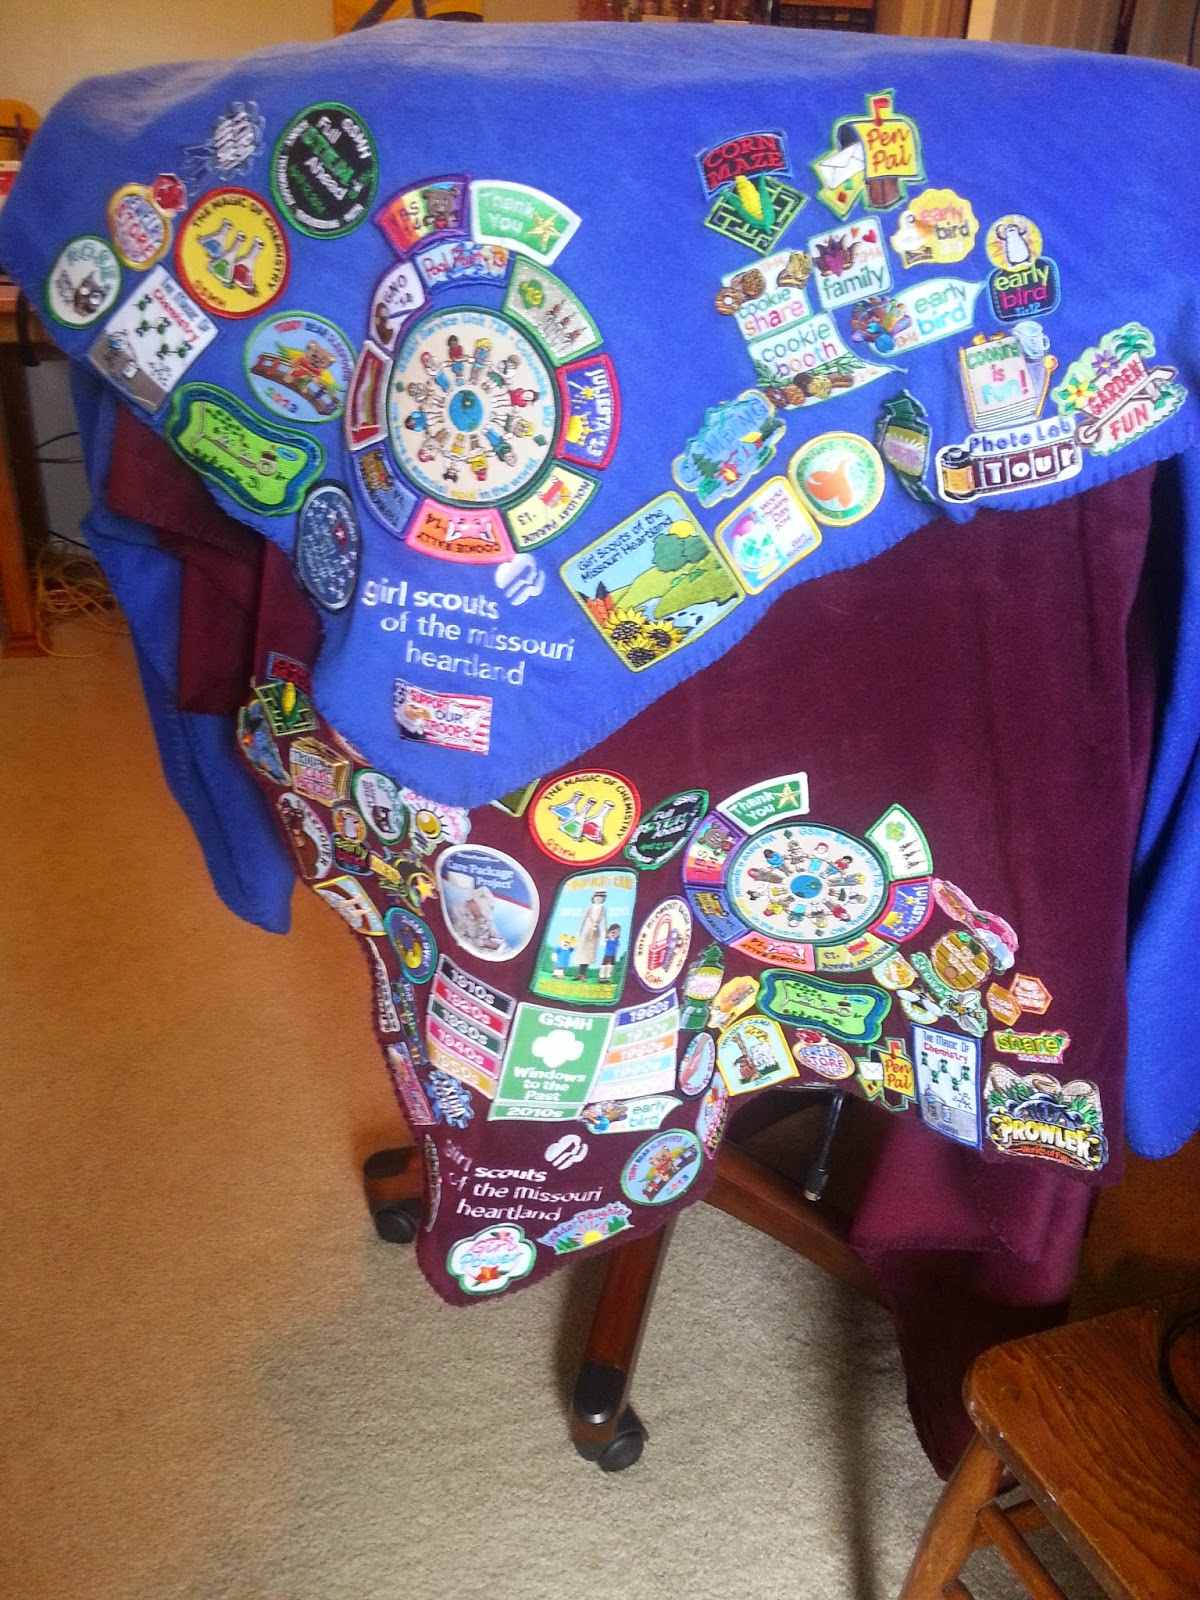 Girl scout leader 101 badge blanket aka fun patch overload i mean of course the girl and i both have blankets but i didnt think about making it a post solutioingenieria Choice Image